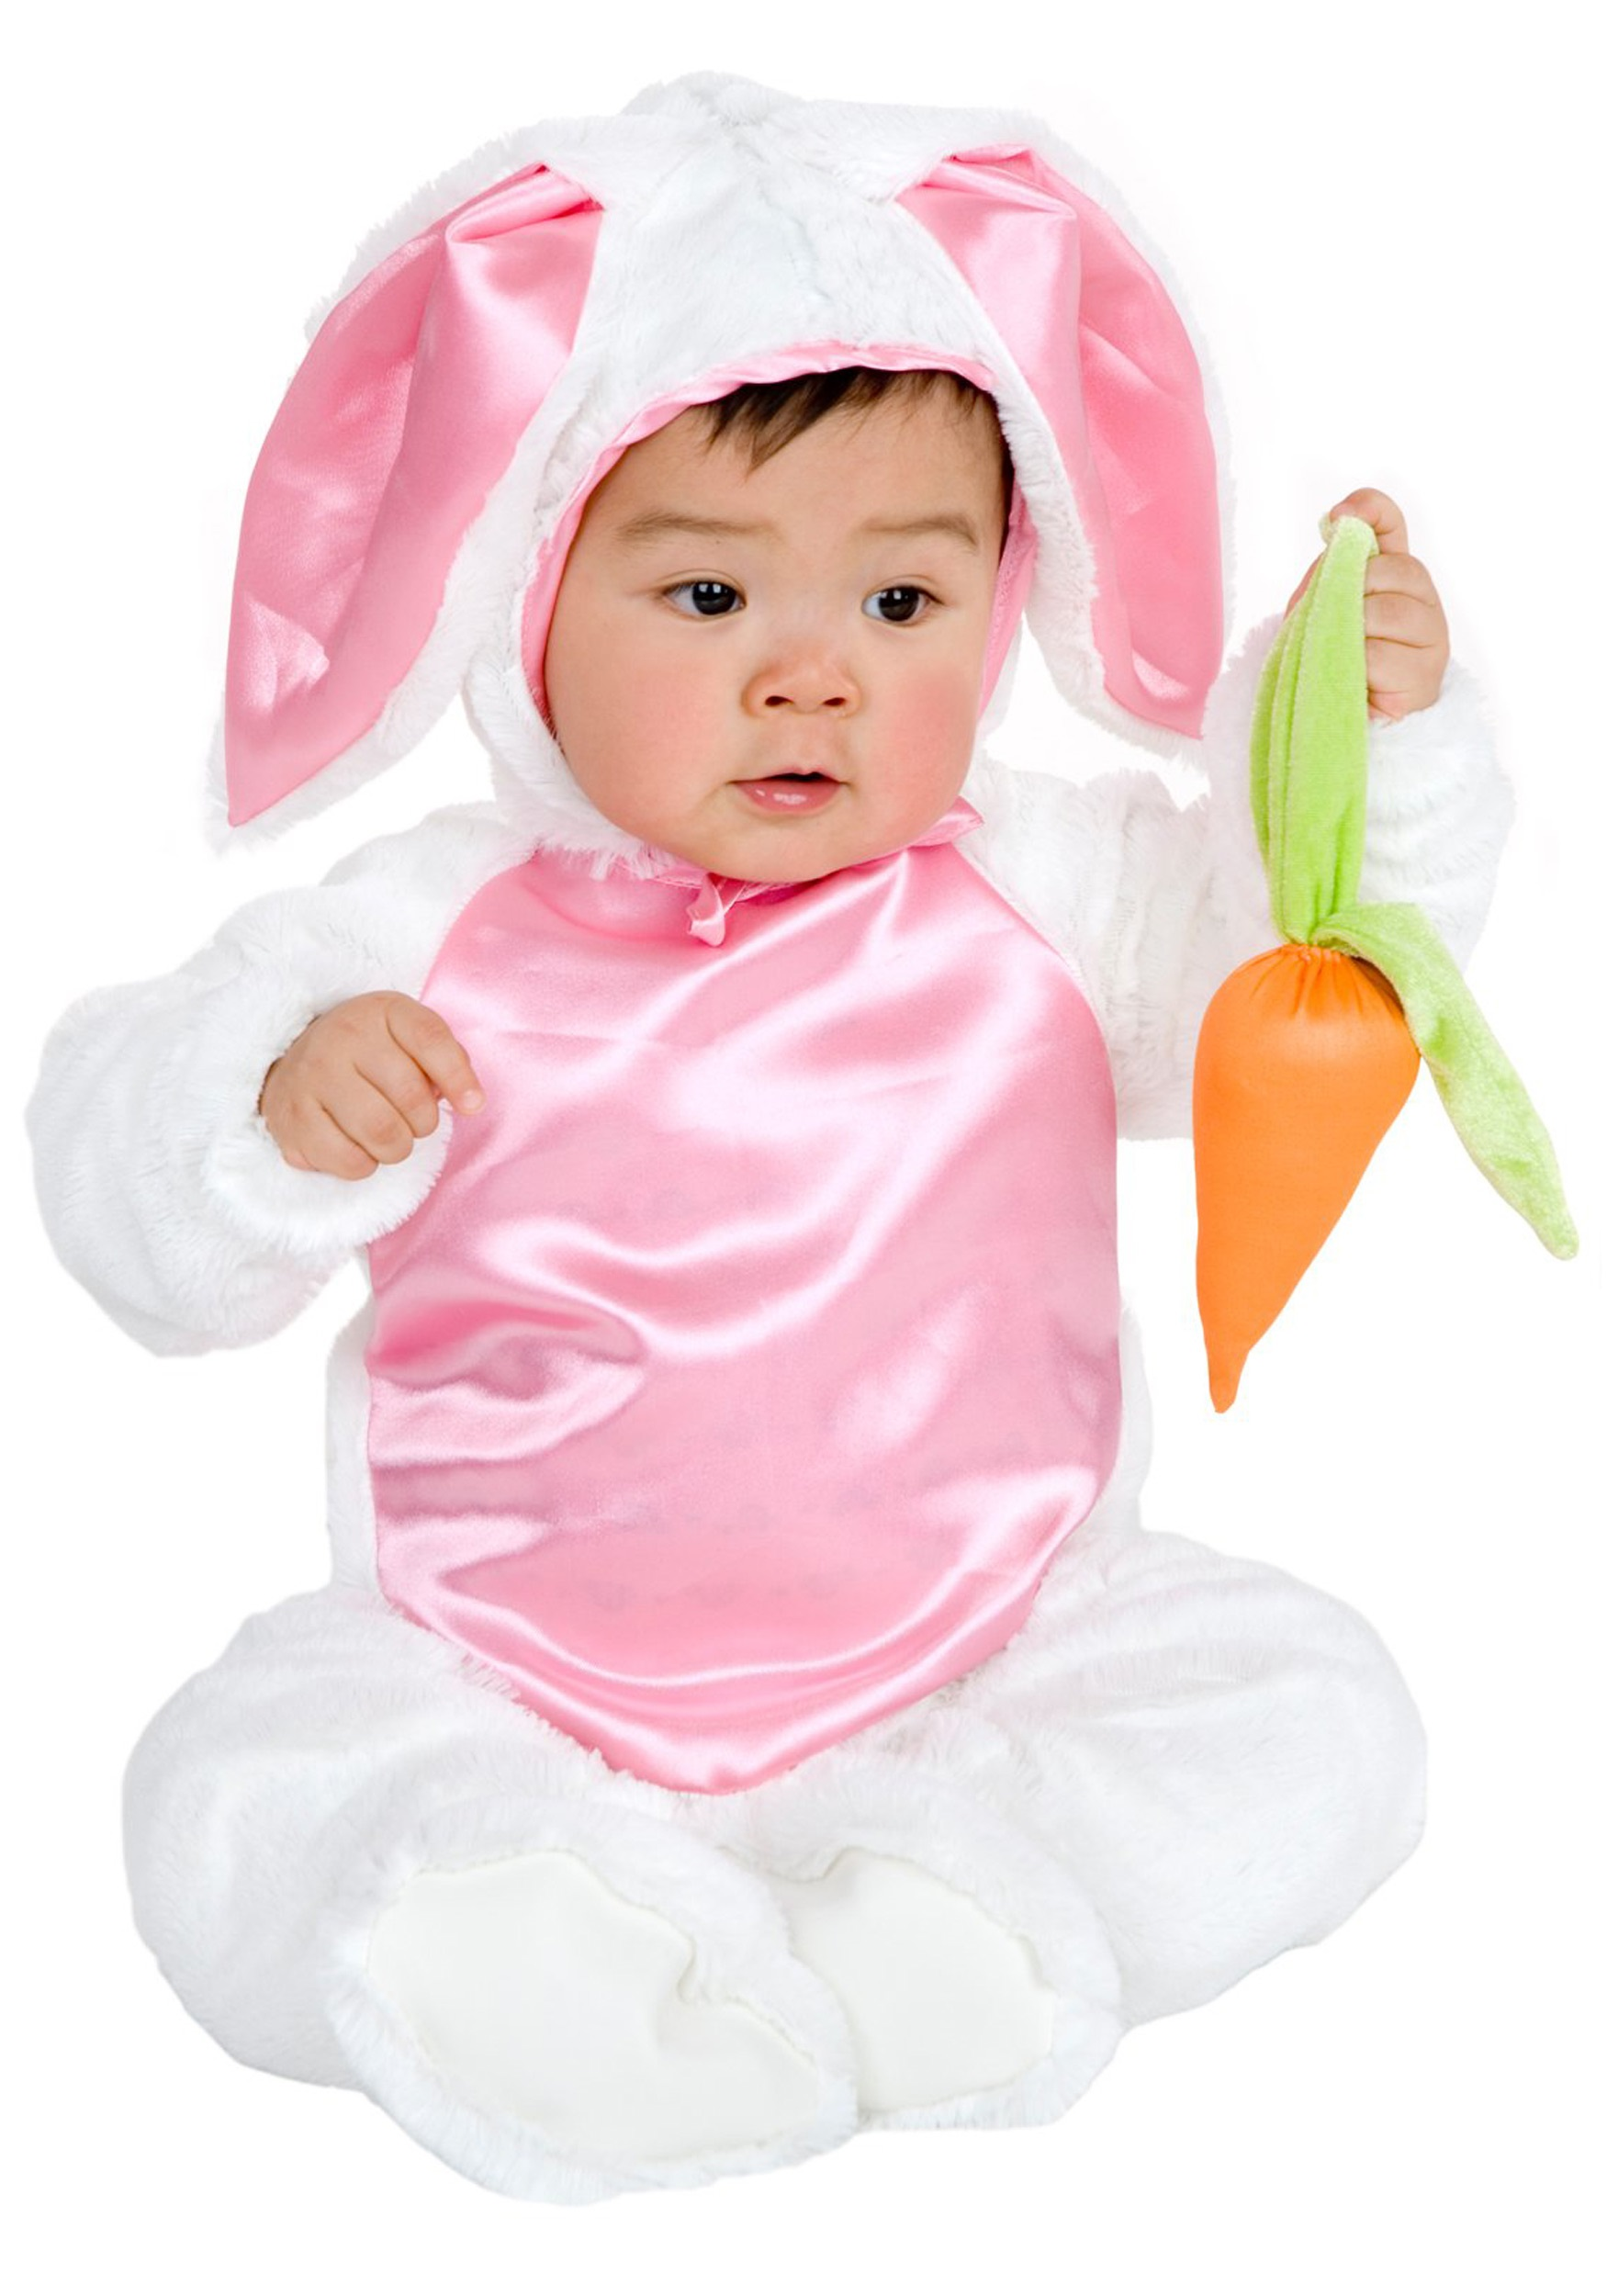 Toddler/Infant Bunny Costume  sc 1 st  Halloween Costume & Toddler/Infant Bunny Costume - Bunny Costumes for Toddlers